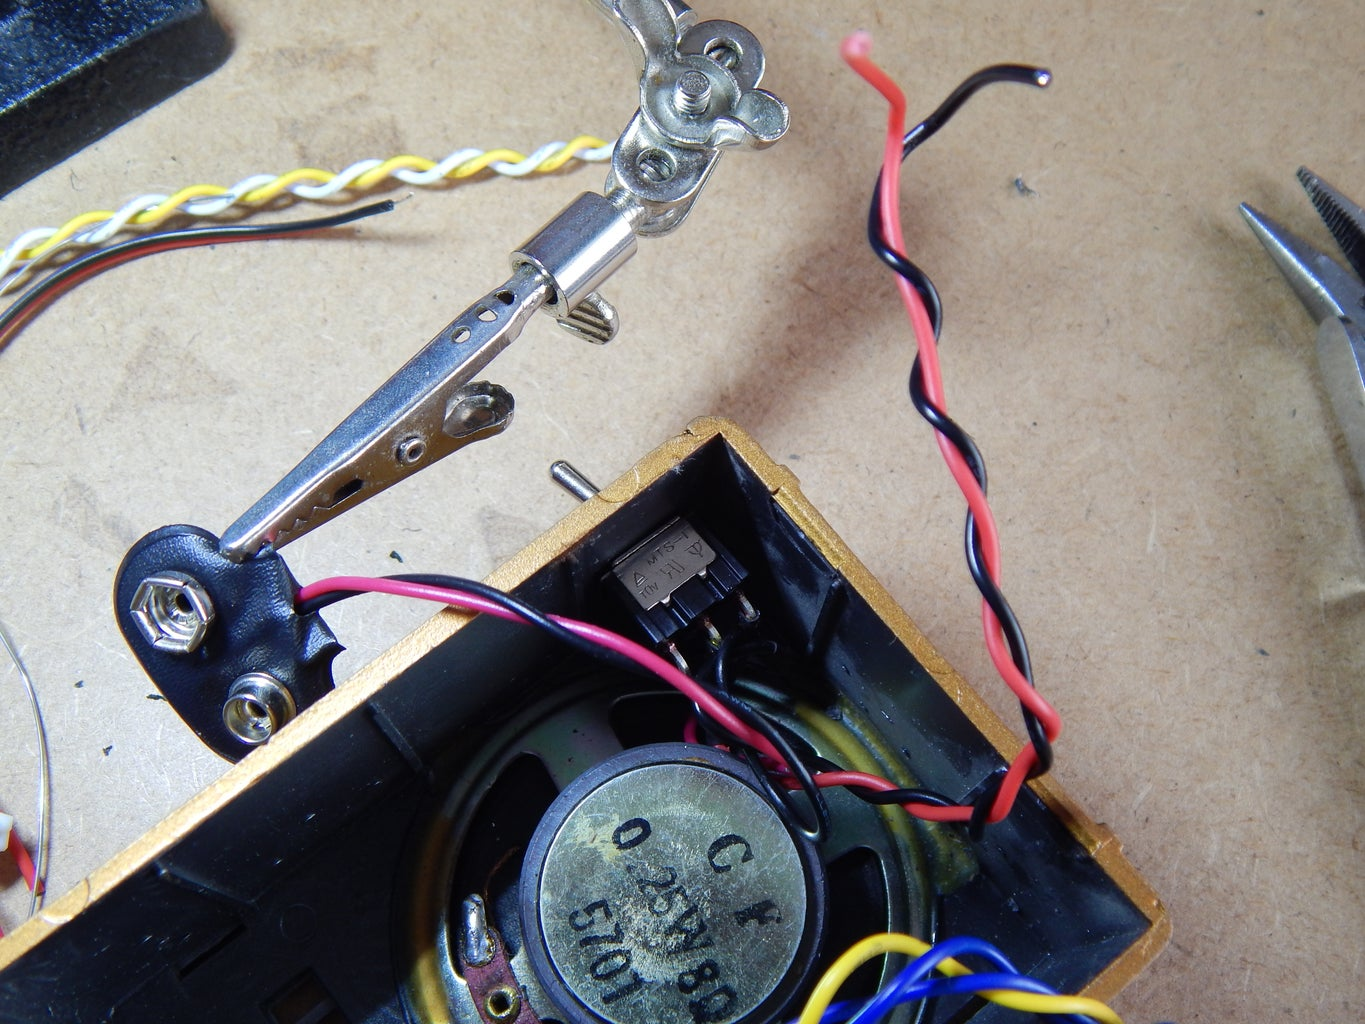 Wiring the Switch